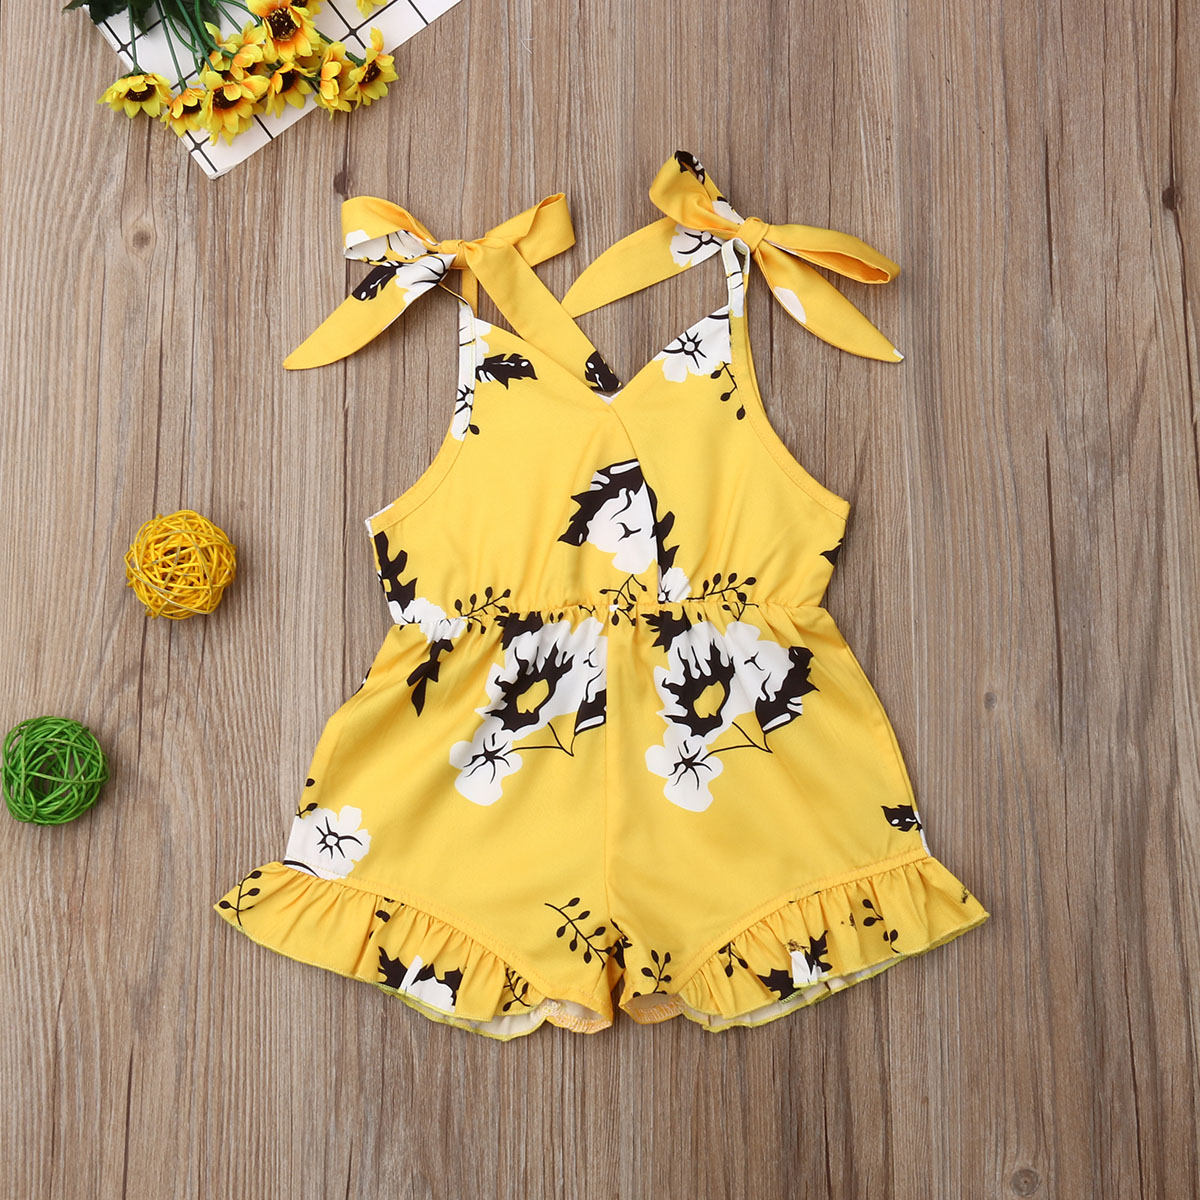 Pudcoco Summer Toddler Baby Girl Clothes Sleeveless Flower Print Strap Romper Jumpsuit One-Piece Outfit Sunsuit Clothes Summer